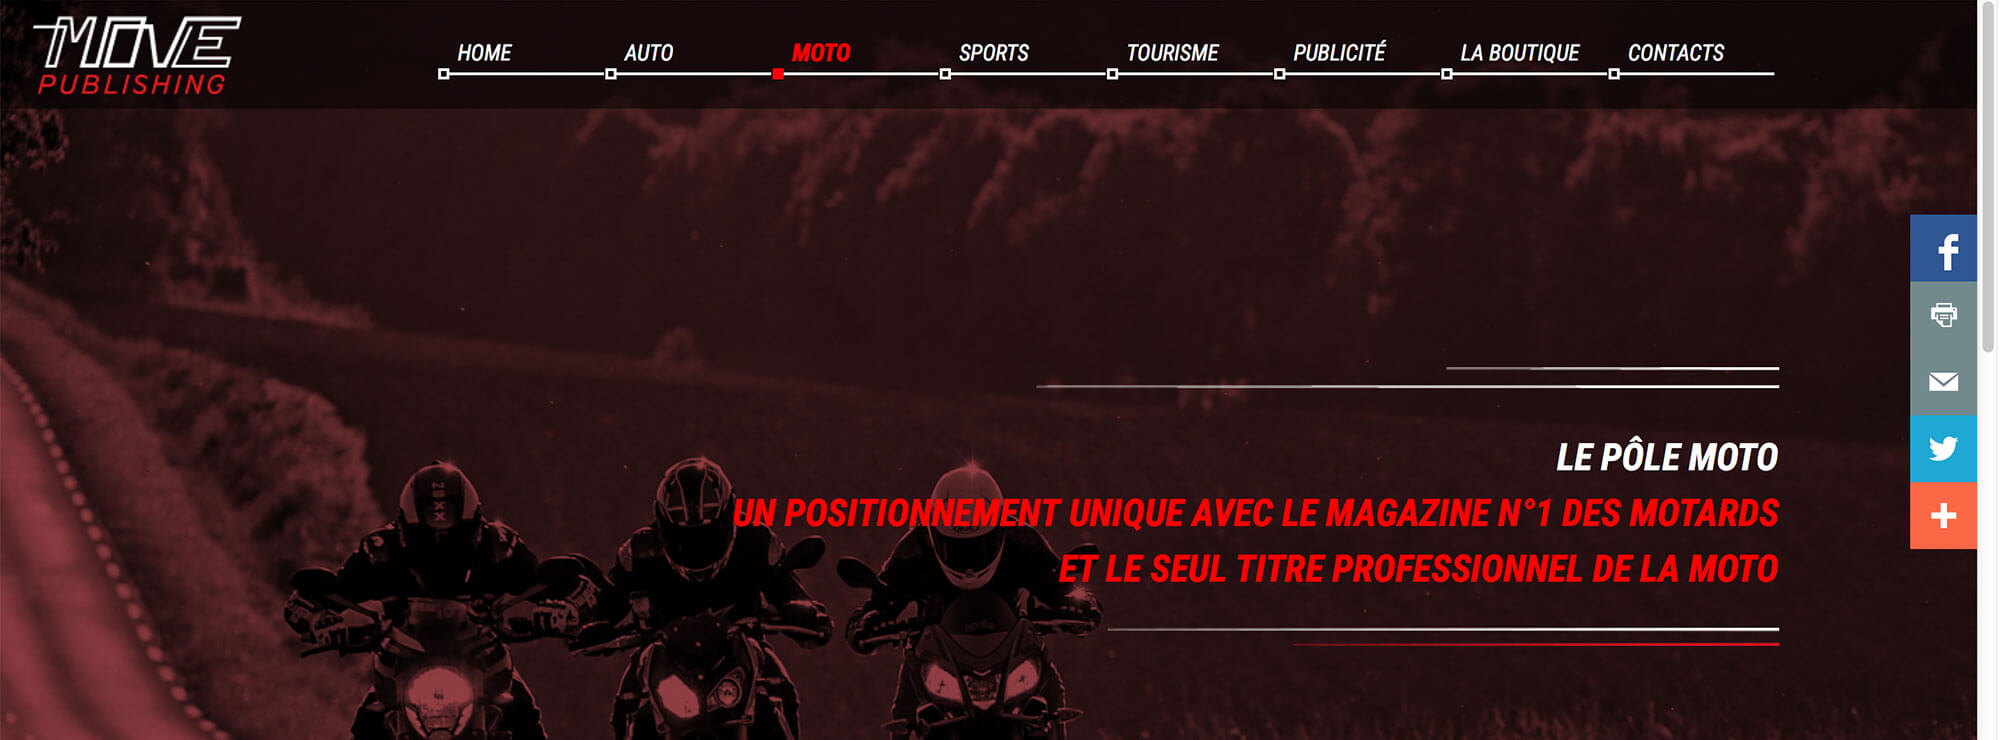 09 motor presse move publishing moto site.jpg